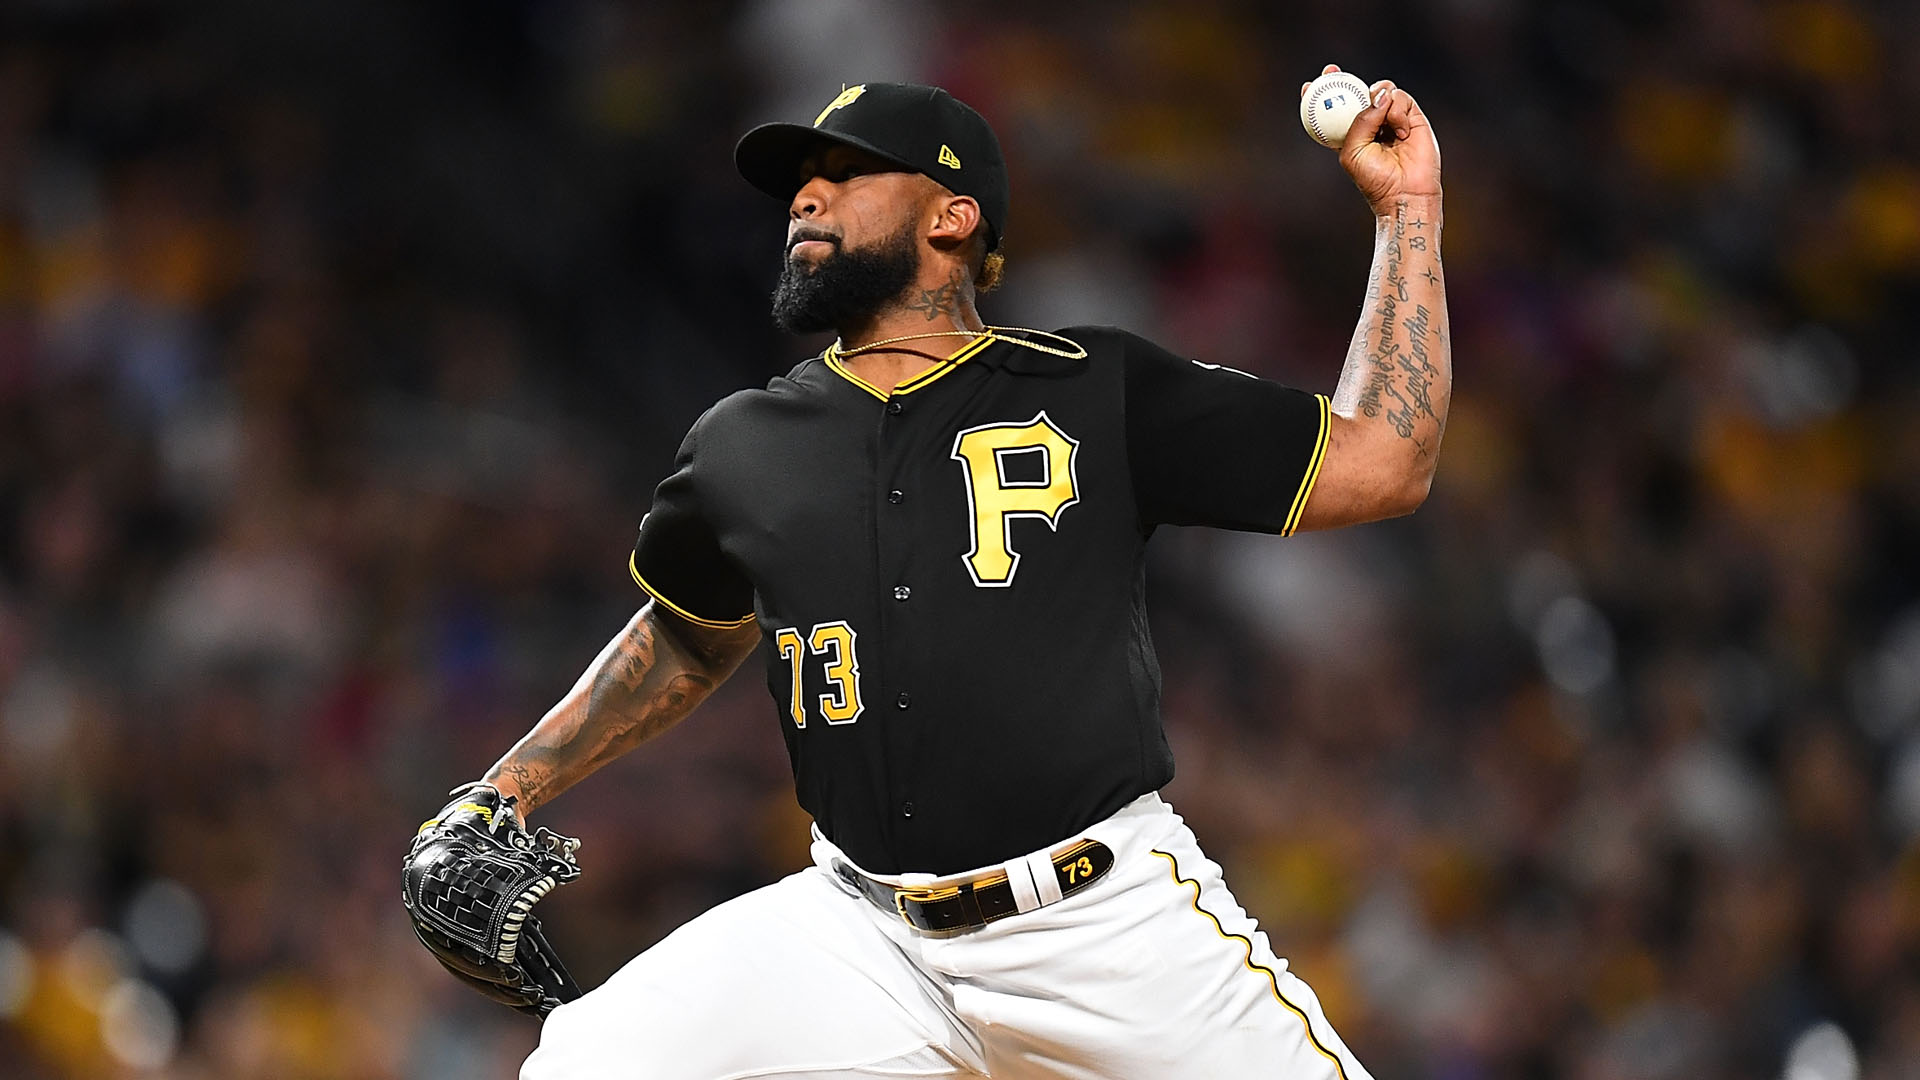 MLB trade rumors: Dodgers interested in at least 2 closers, including Felipe Vazquez